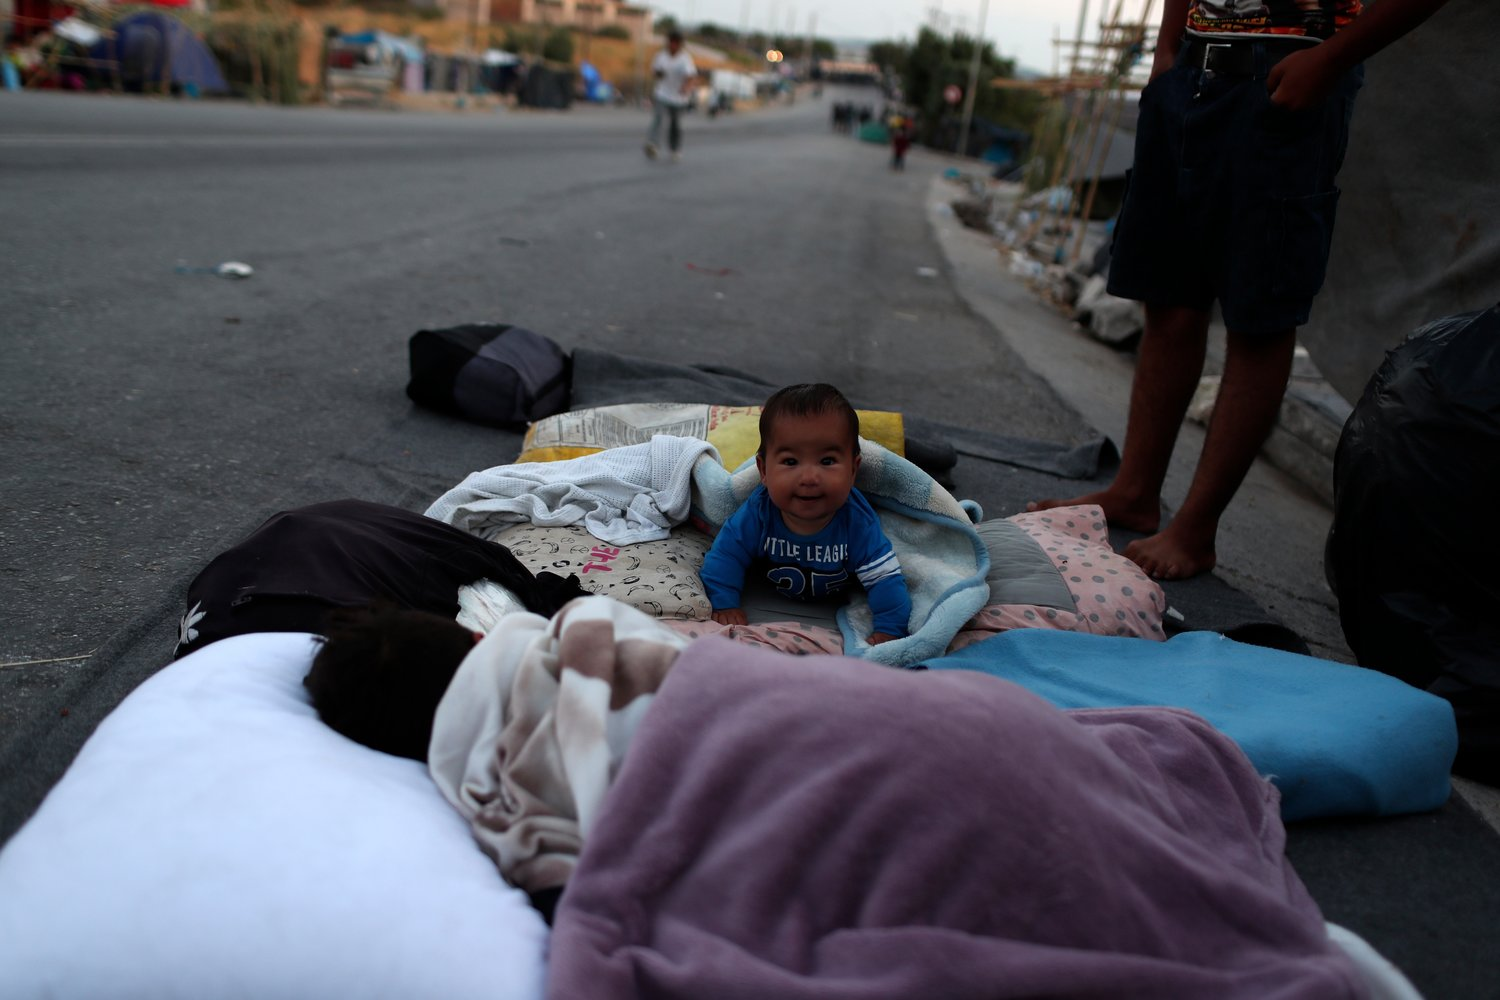 A baby crawls as migrants remained camped out on a road leading from Moria to the capital of Mytilene, on the northeastern island of Lesbos, Greece, Thursday, Sept. 17, 2020. Fires swept through the overcrowded camp at Moria on two nights last week, prompting more than 12,000 migrants and refugees to flee. Most of them remain without shelter even though emergency tents are available at another island site where a new camp is being built.  (AP Photo/Petros Giannakouris)